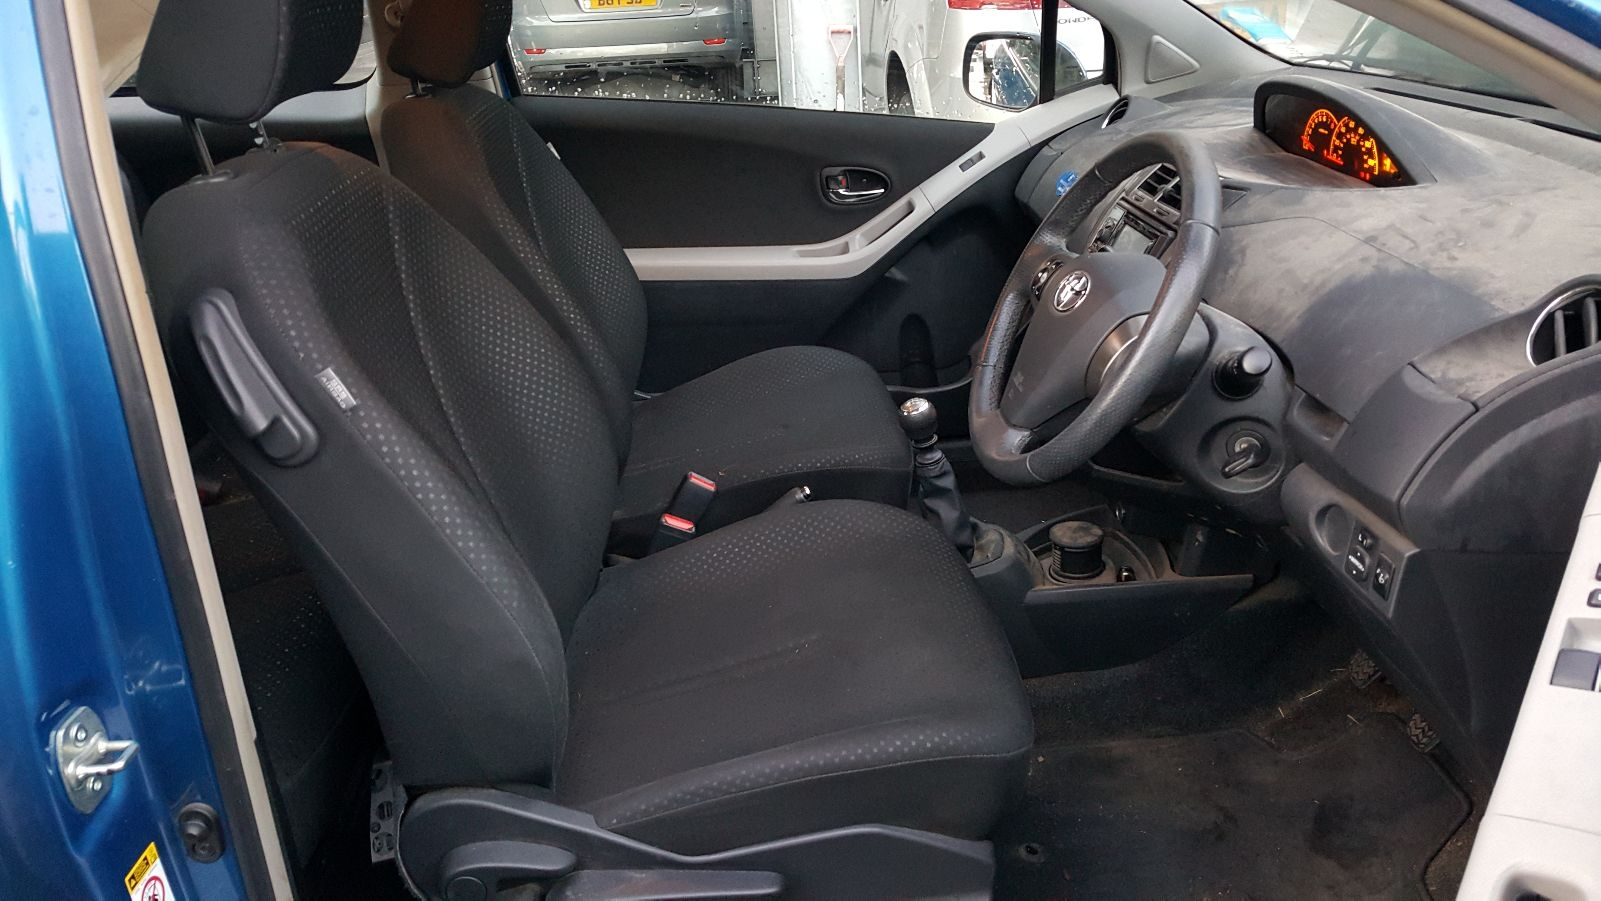 View Auto part Gear Stick/Shifter Toyota Yaris 2011